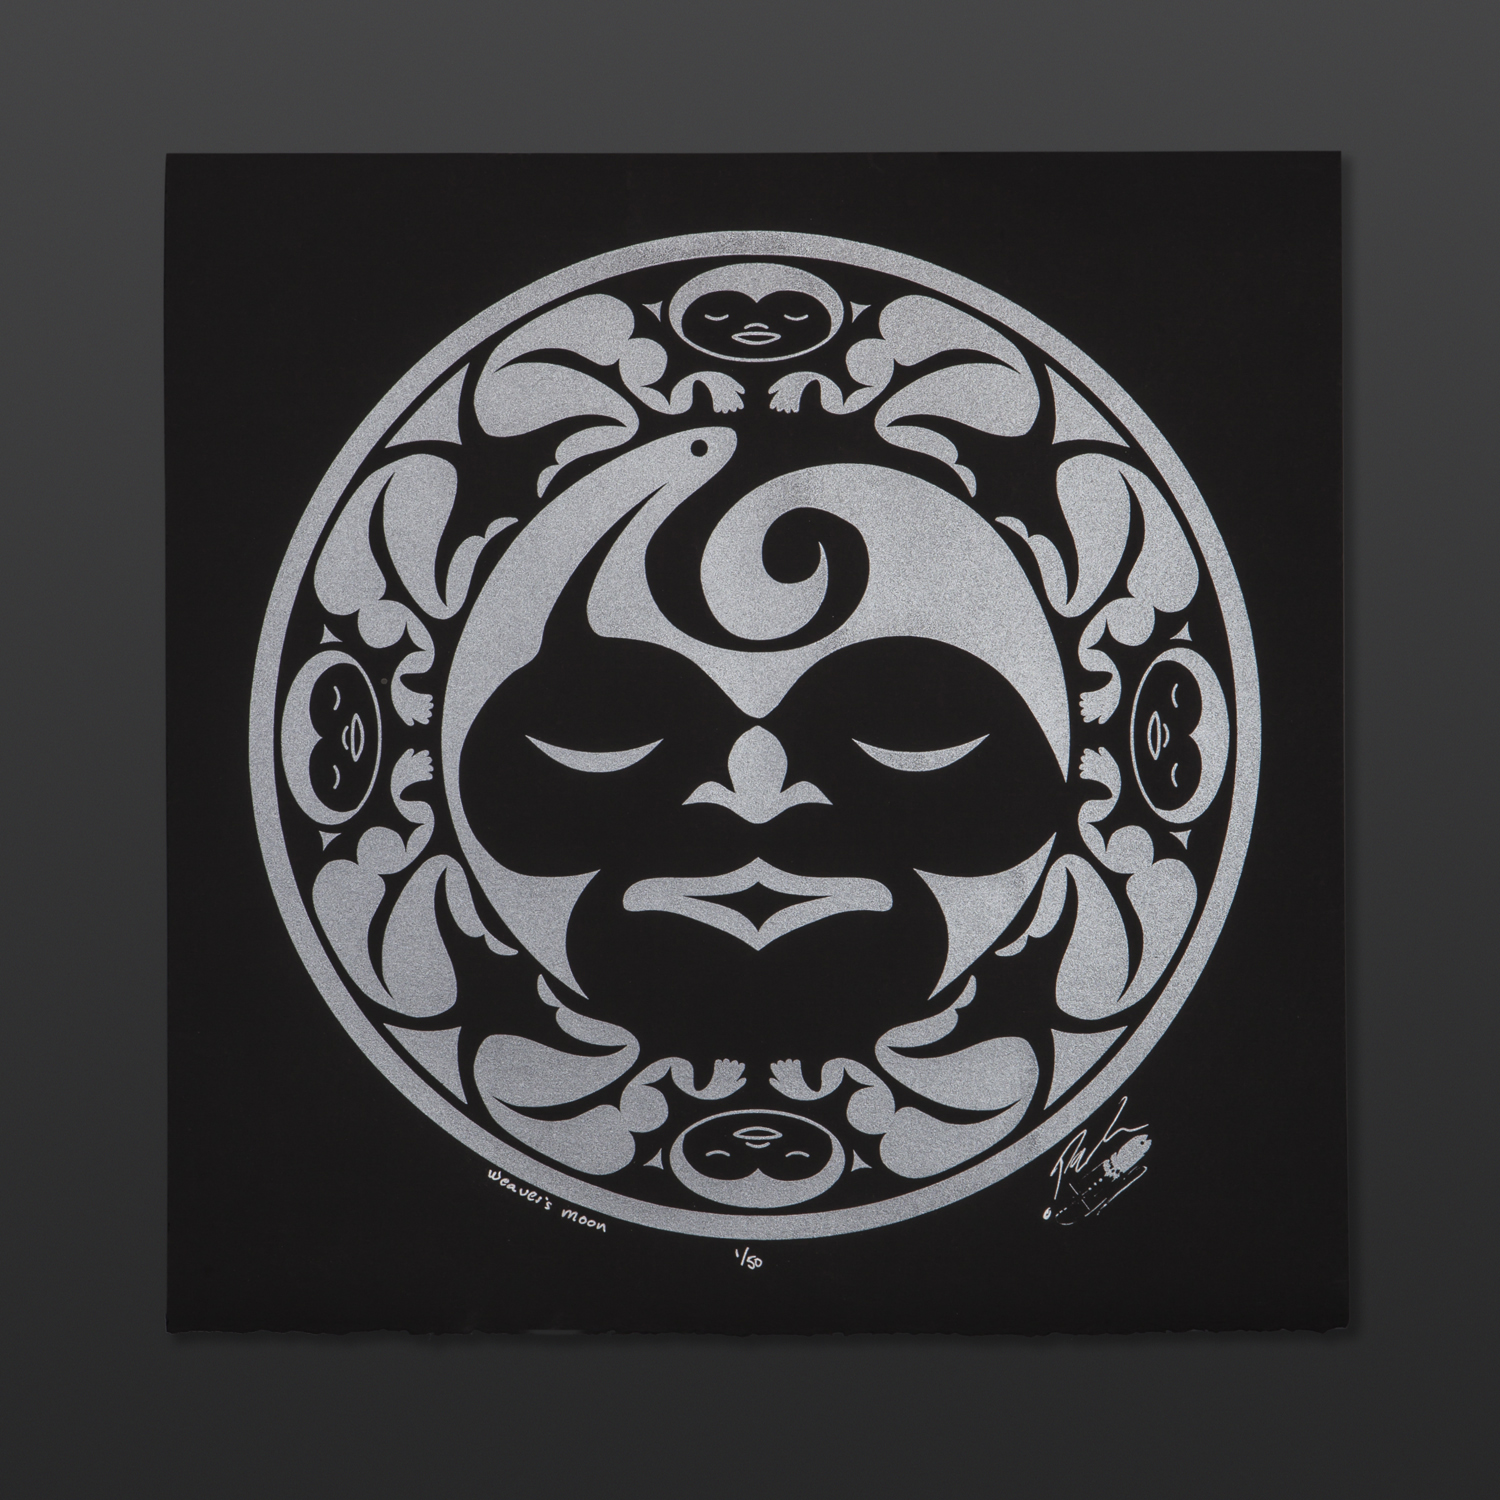 """Weaver's Moon - Silver Peter Boome Coast Salish Limited Edition Serigraph 15"""" x 15"""" $100"""